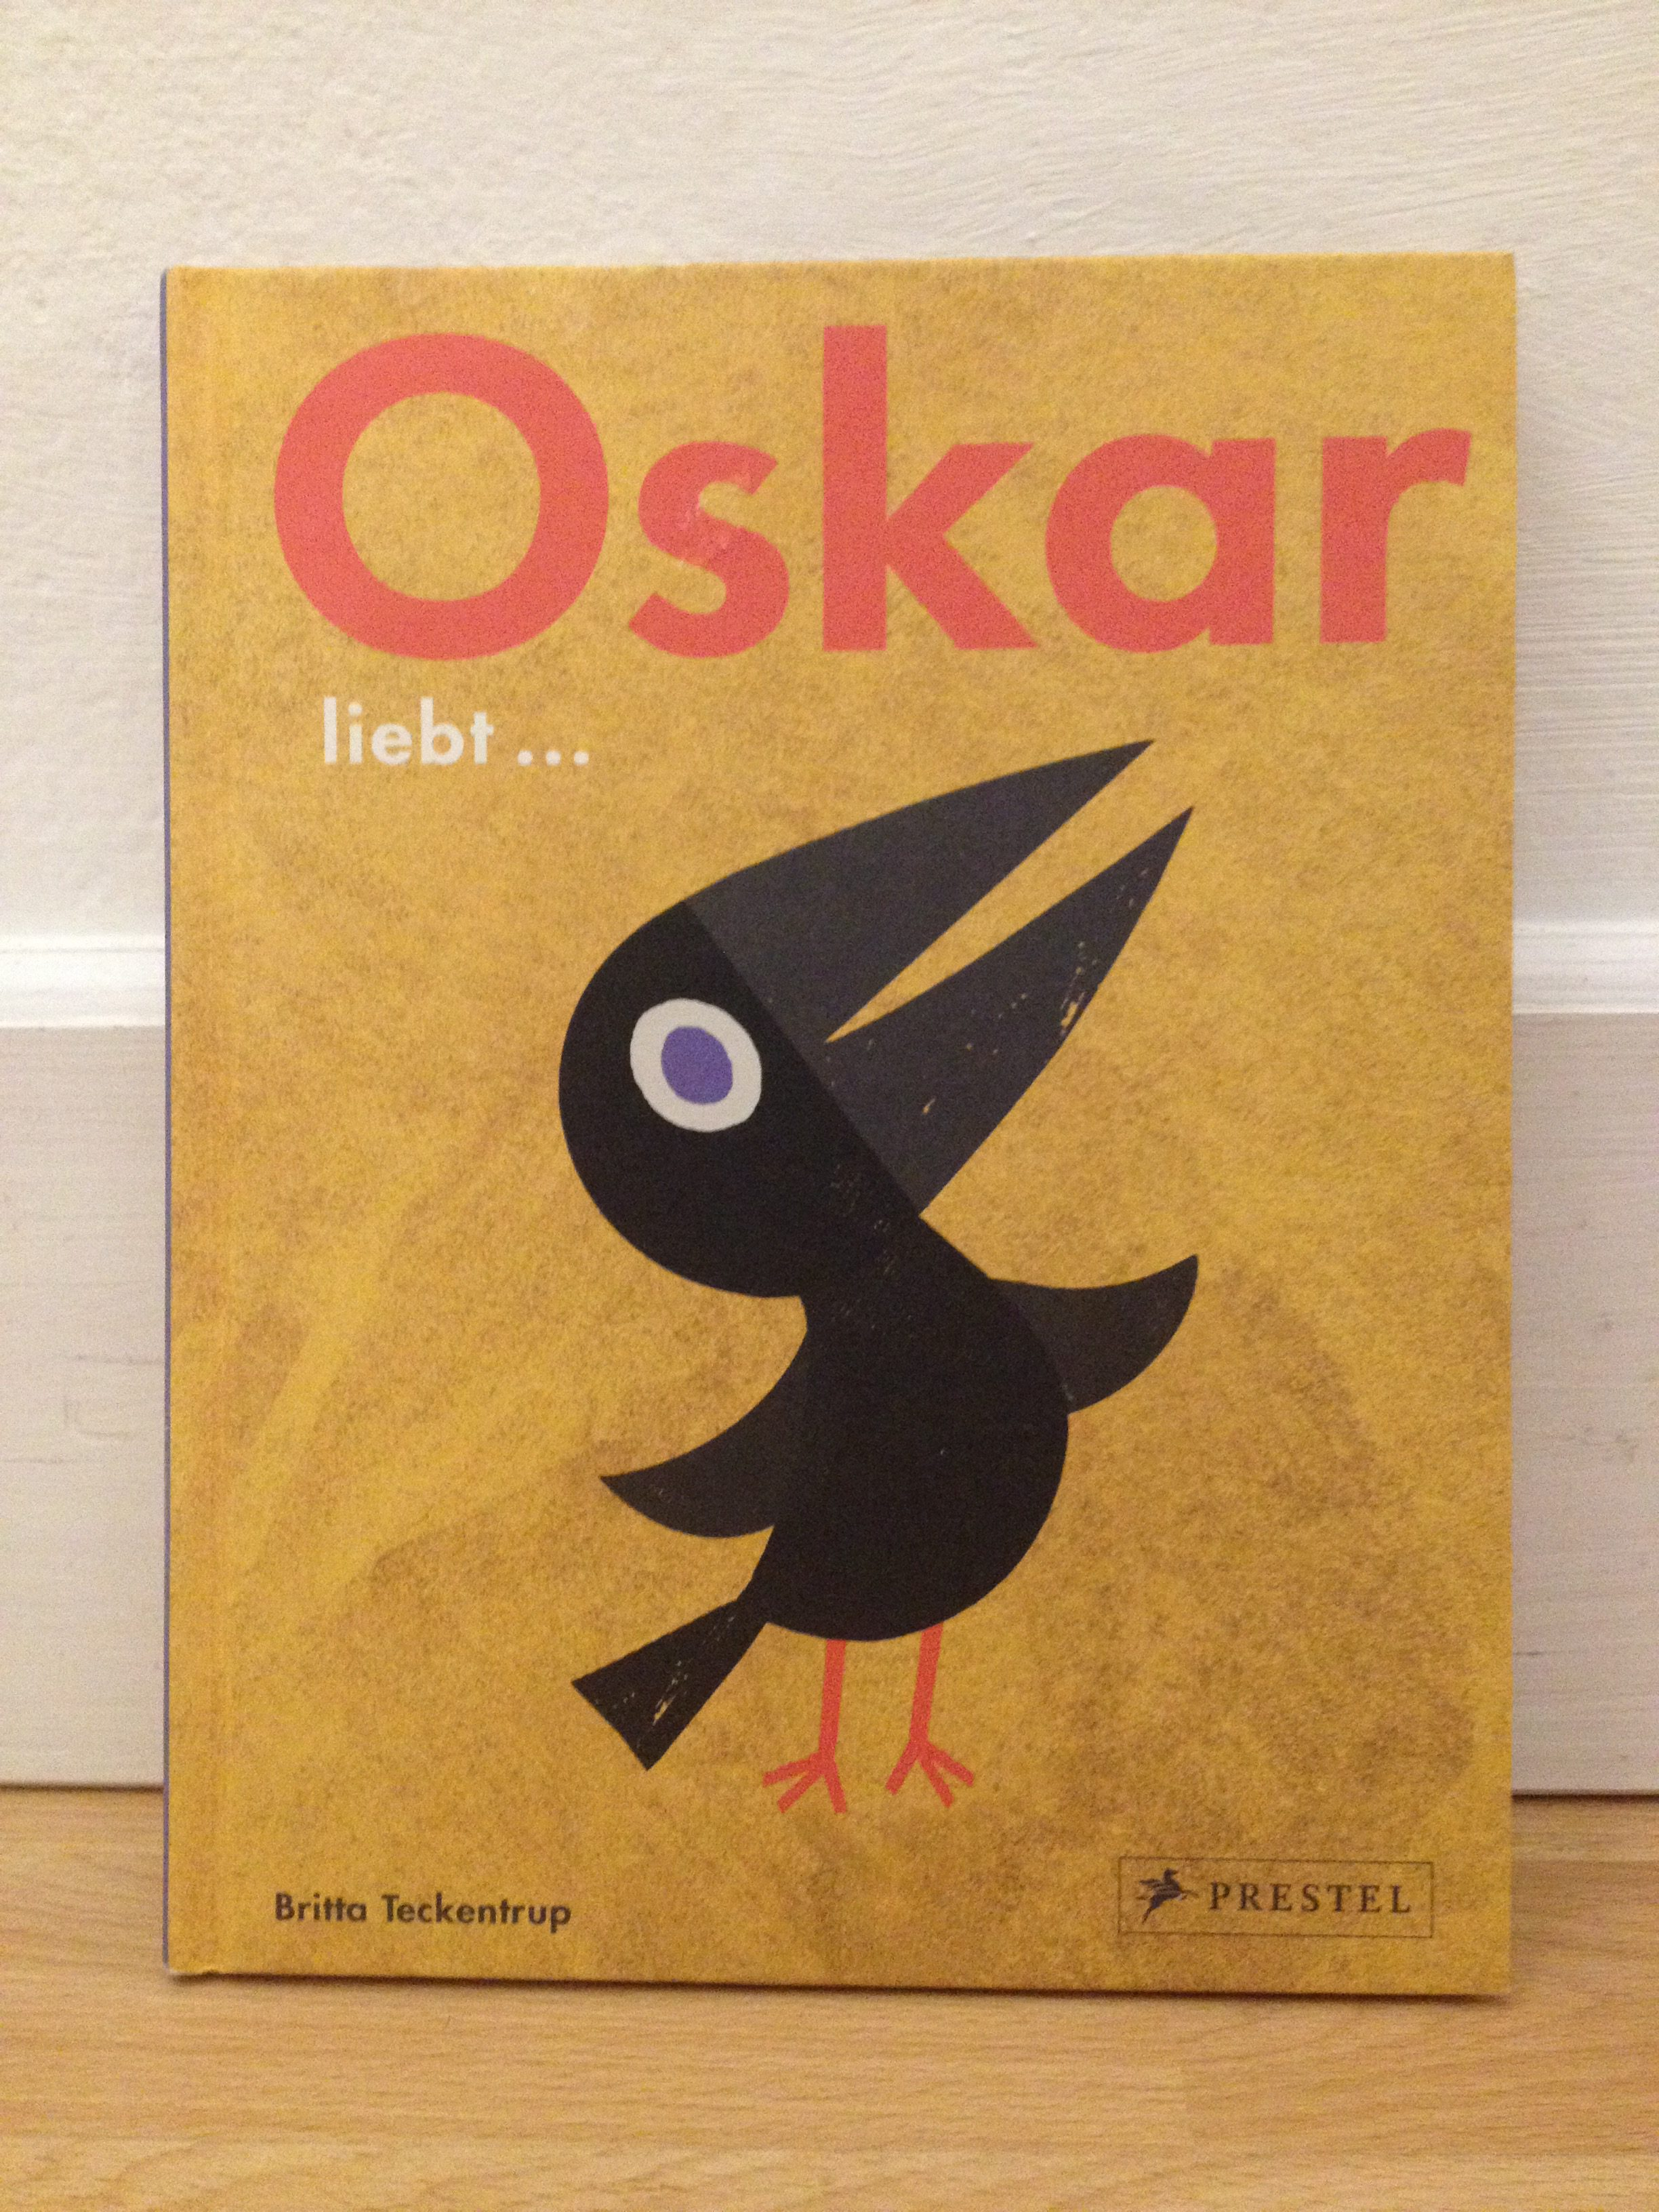 Oskar liebt... Book Cover